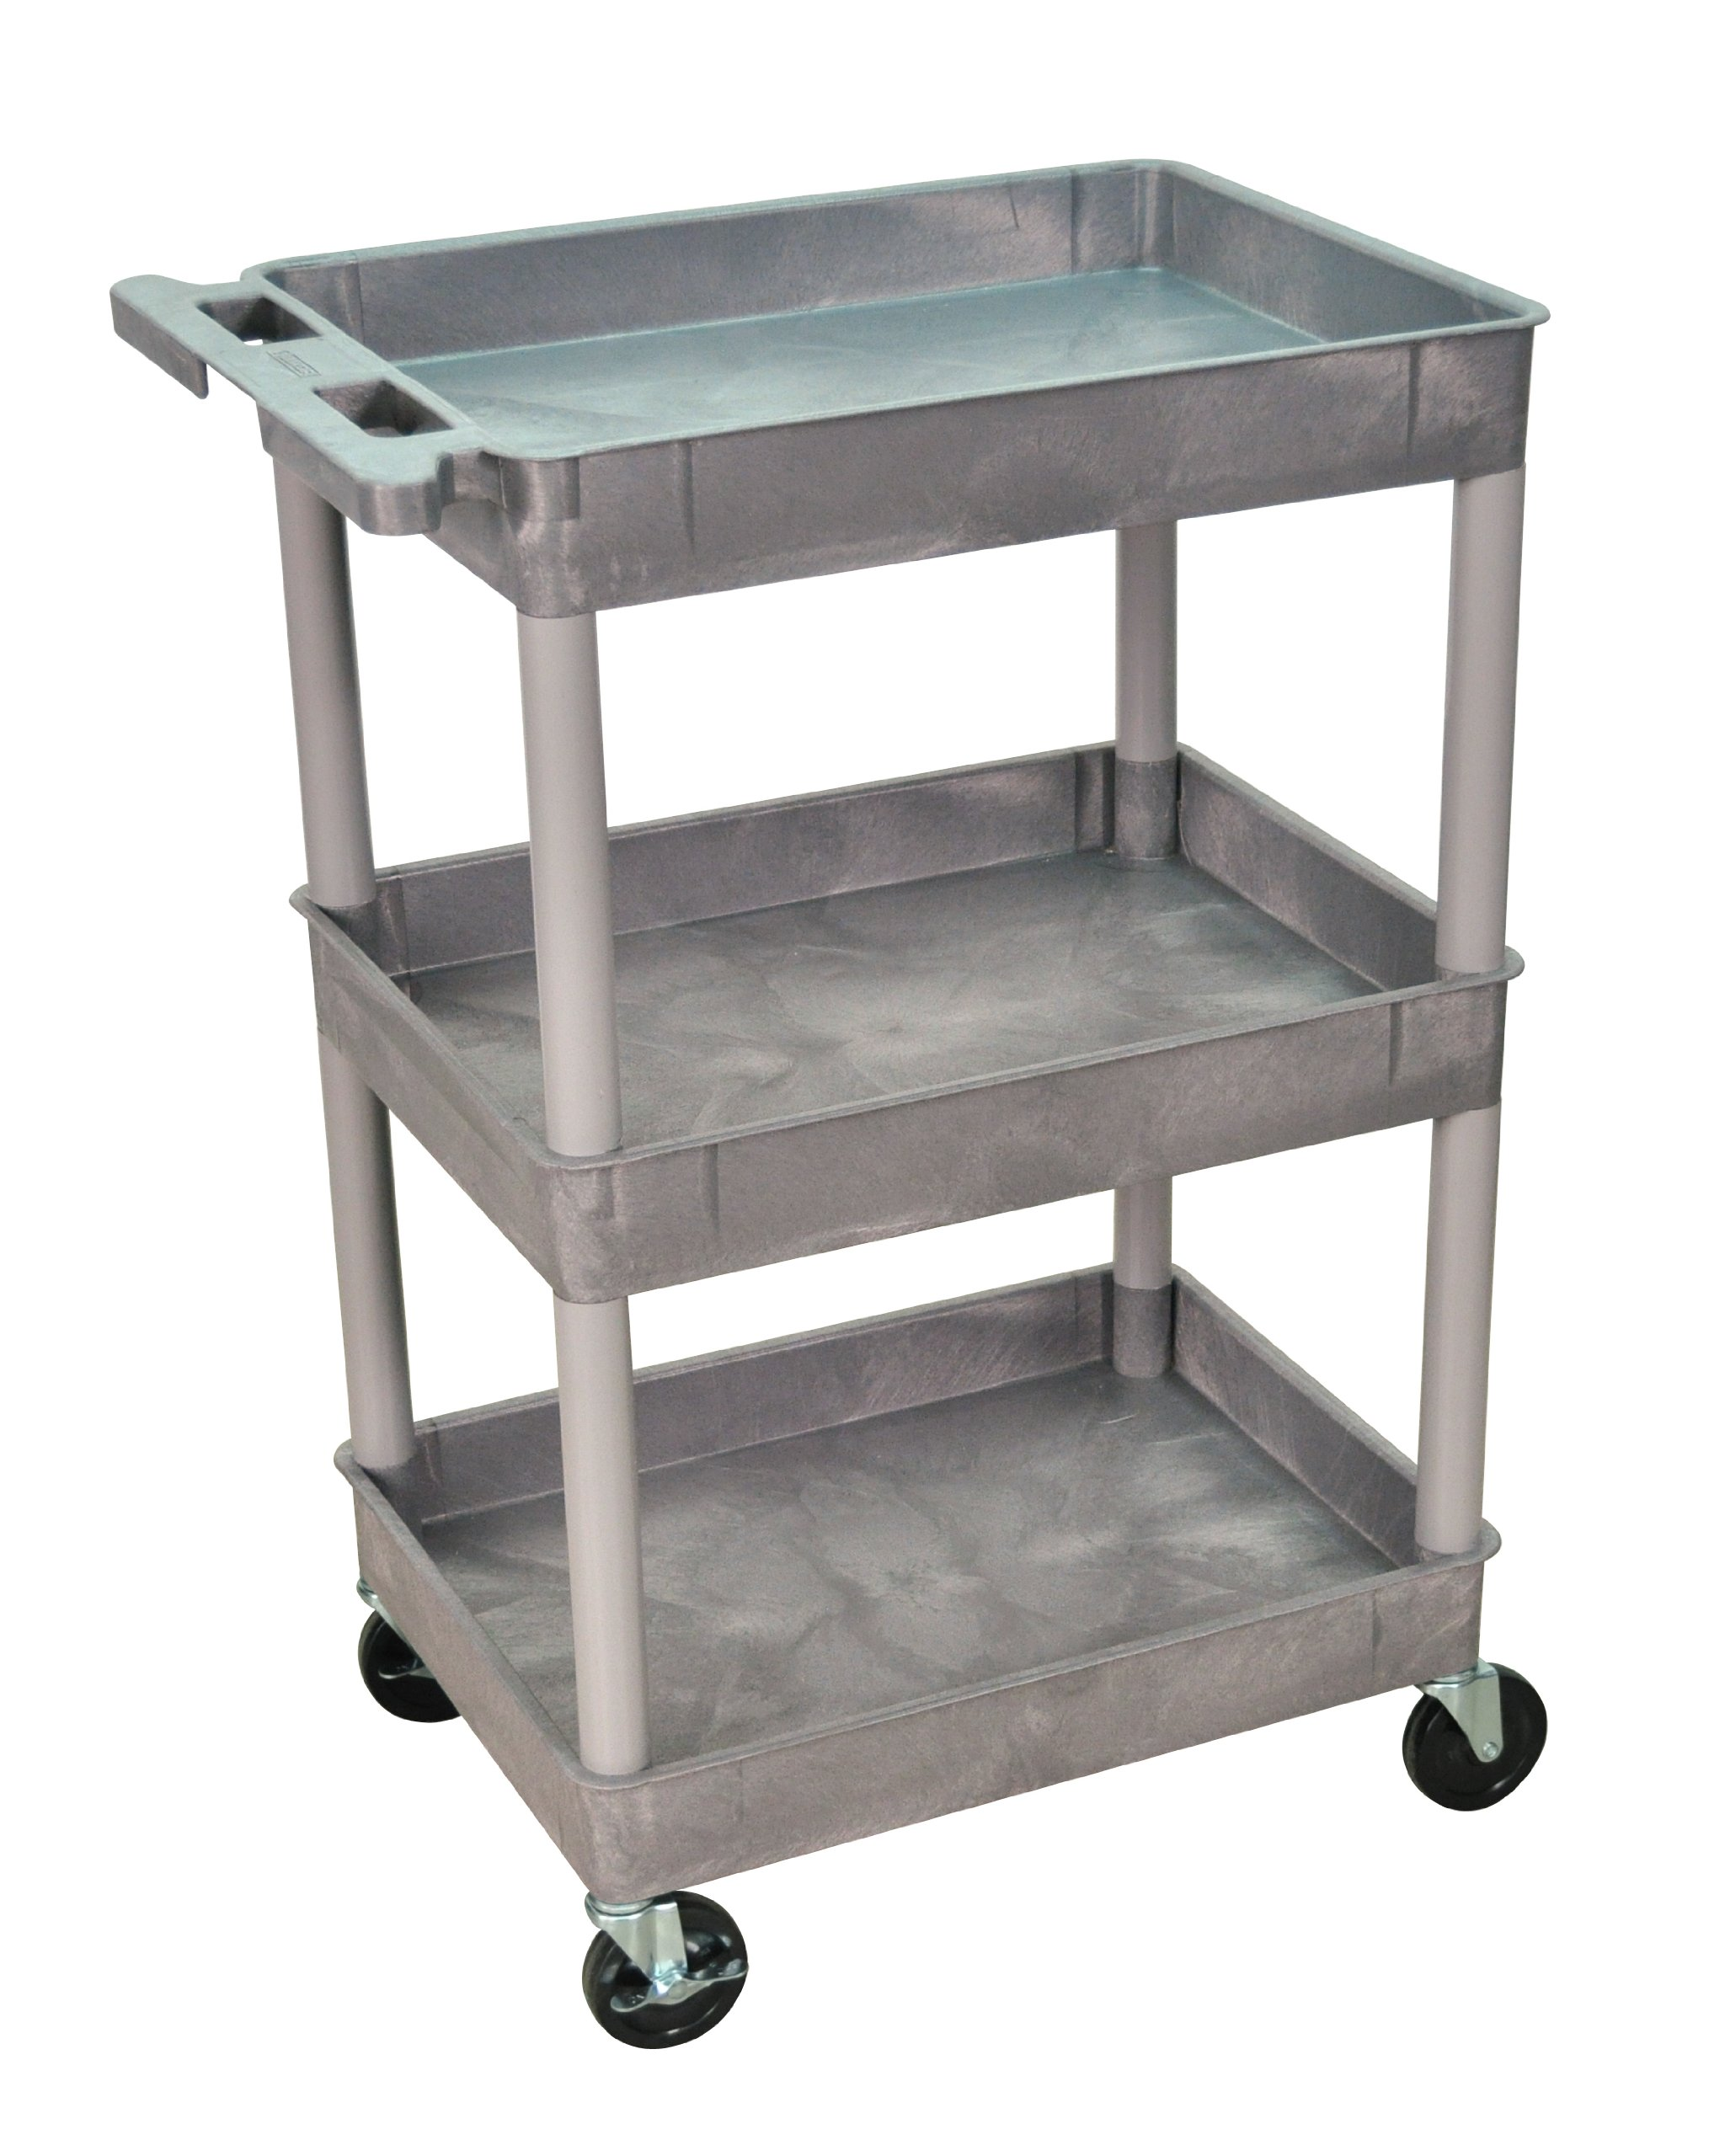 Best Rated in Utility Carts & Helpful Customer Reviews - Amazon.com